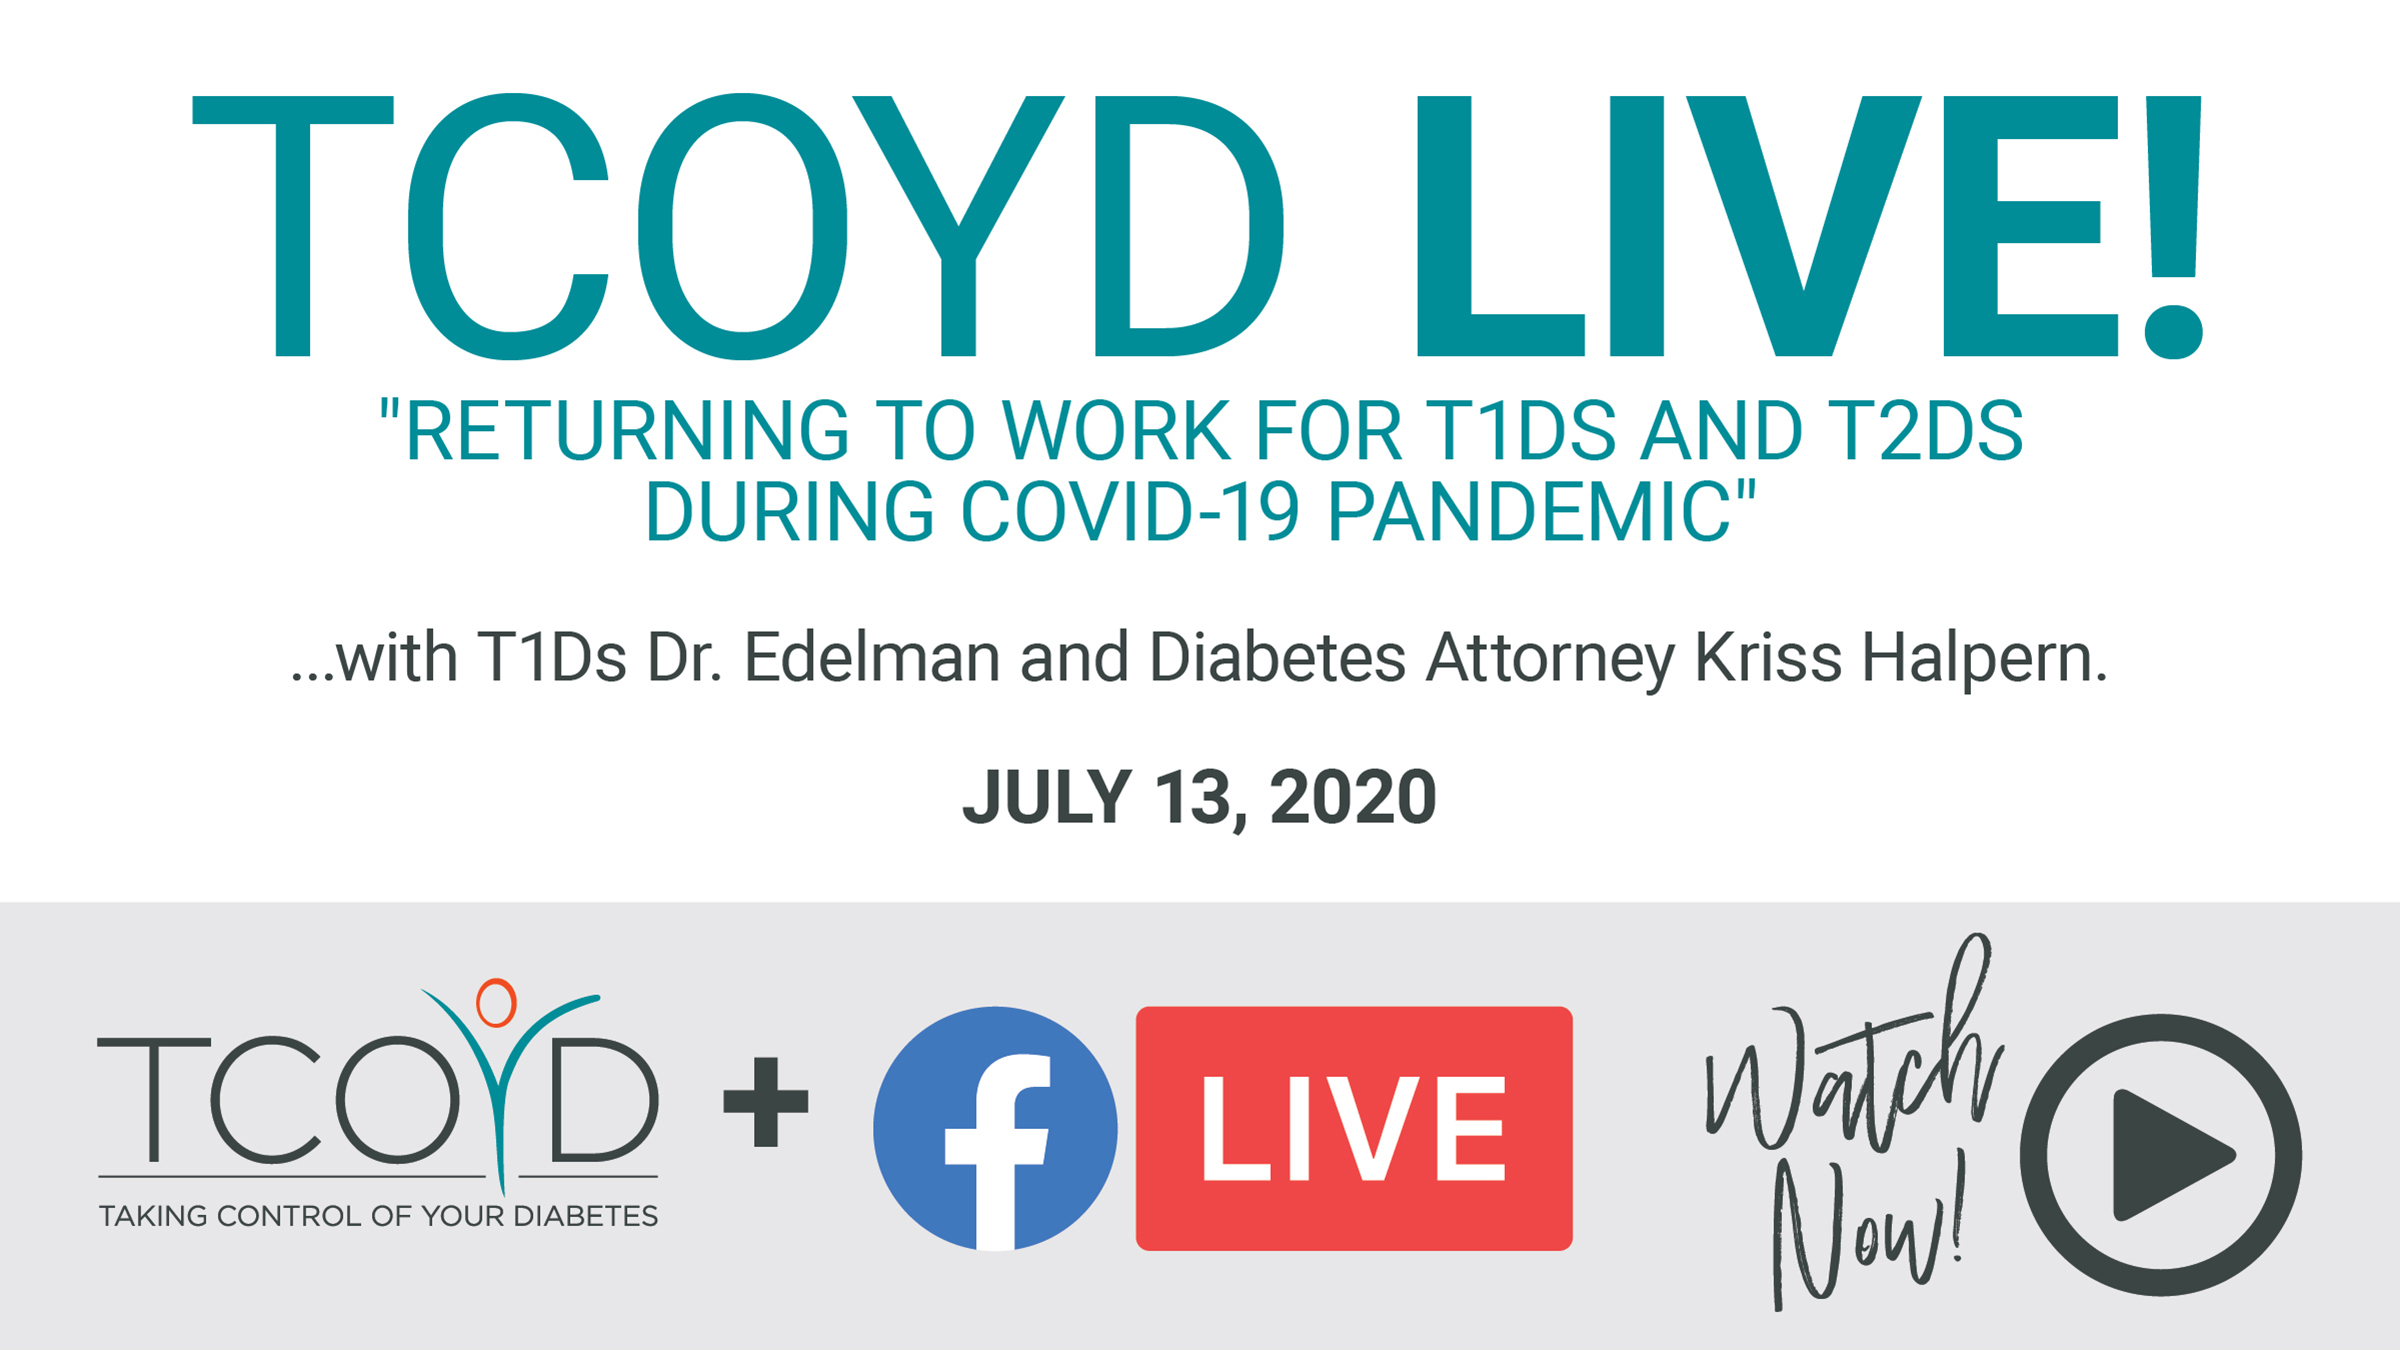 TCOYD Facebook Live: People with Diabetes Returning to Work During COVID-19